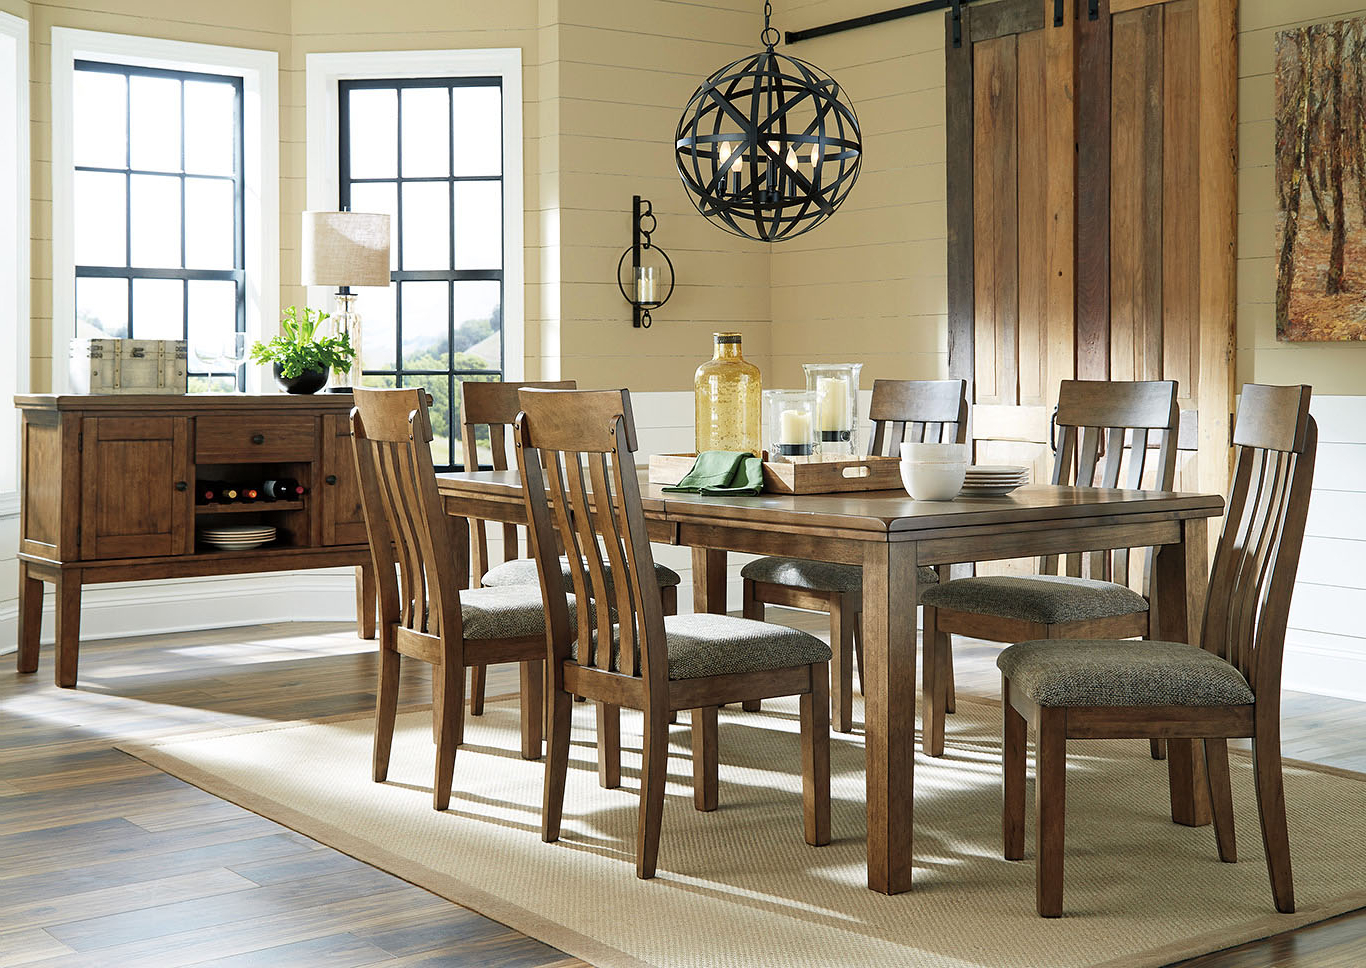 Fashionable Southside Furniture Flaybern Light Brown Extension Dining Within Transitional 6 Seating Casual Dining Tables (View 10 of 30)